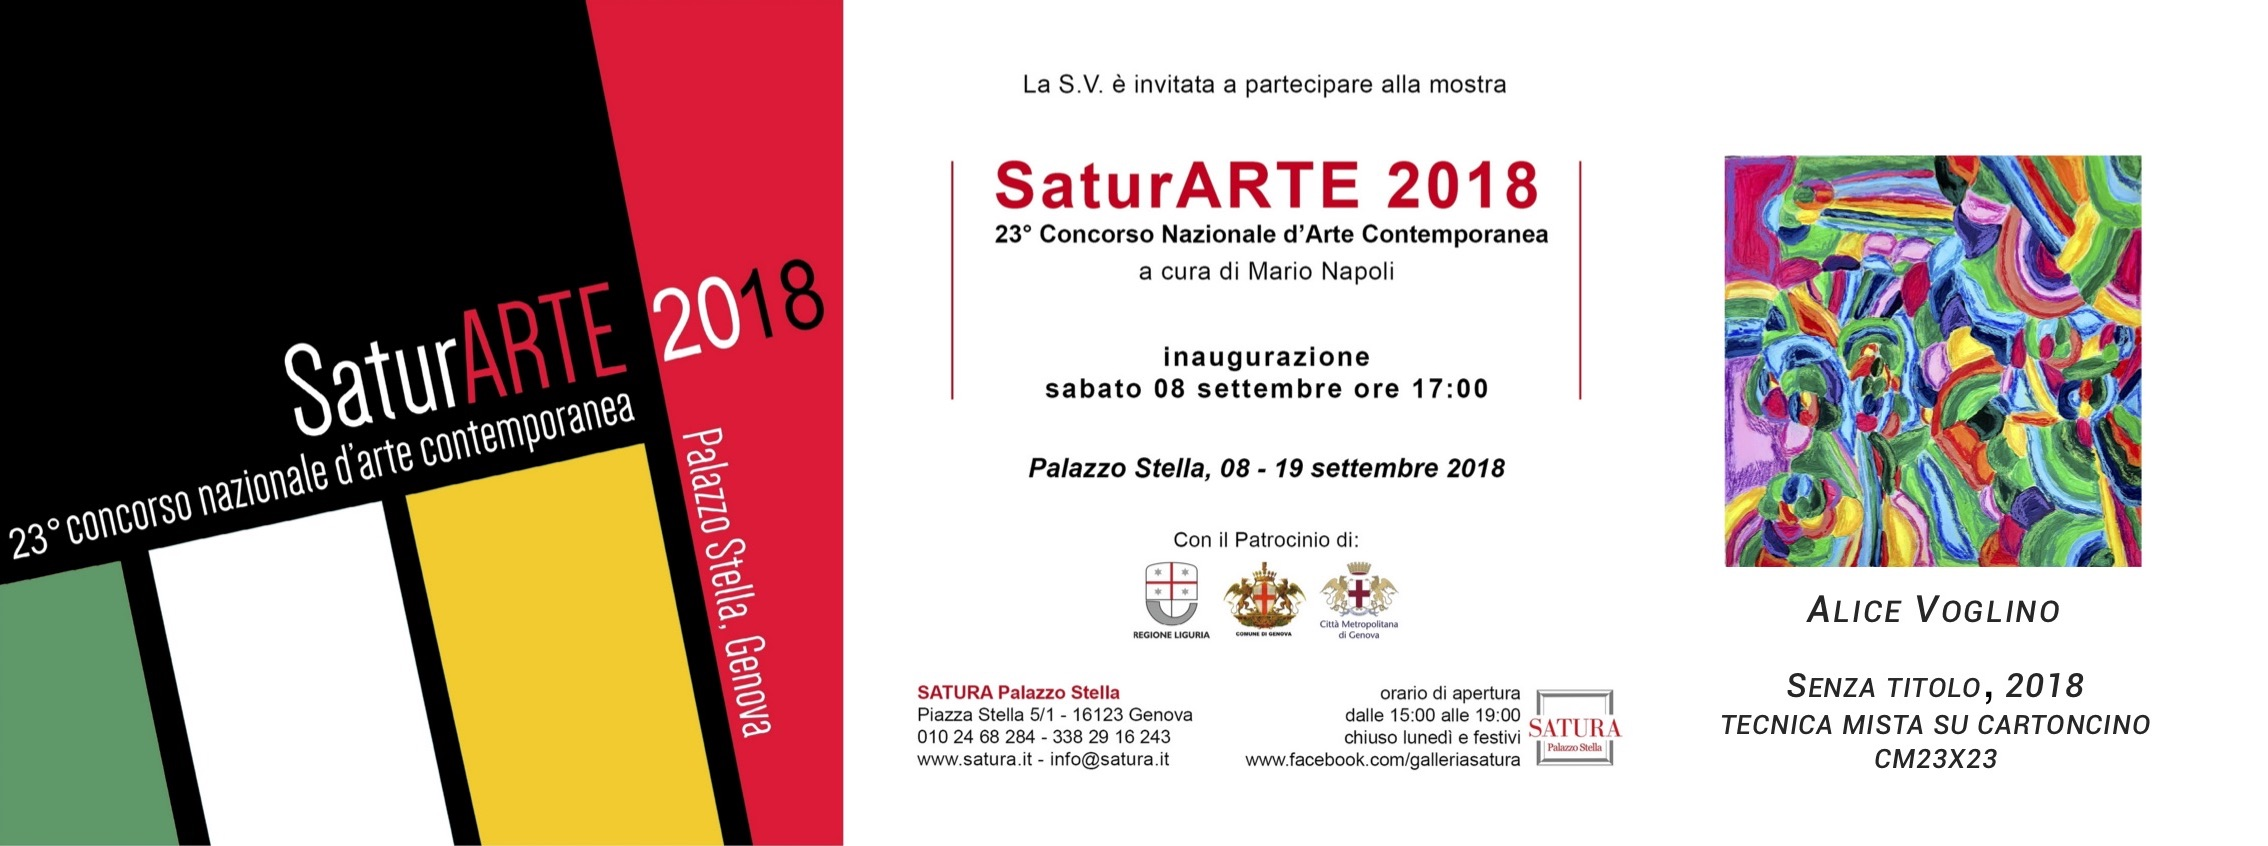 invito Alice Voglino_Saturarte2018